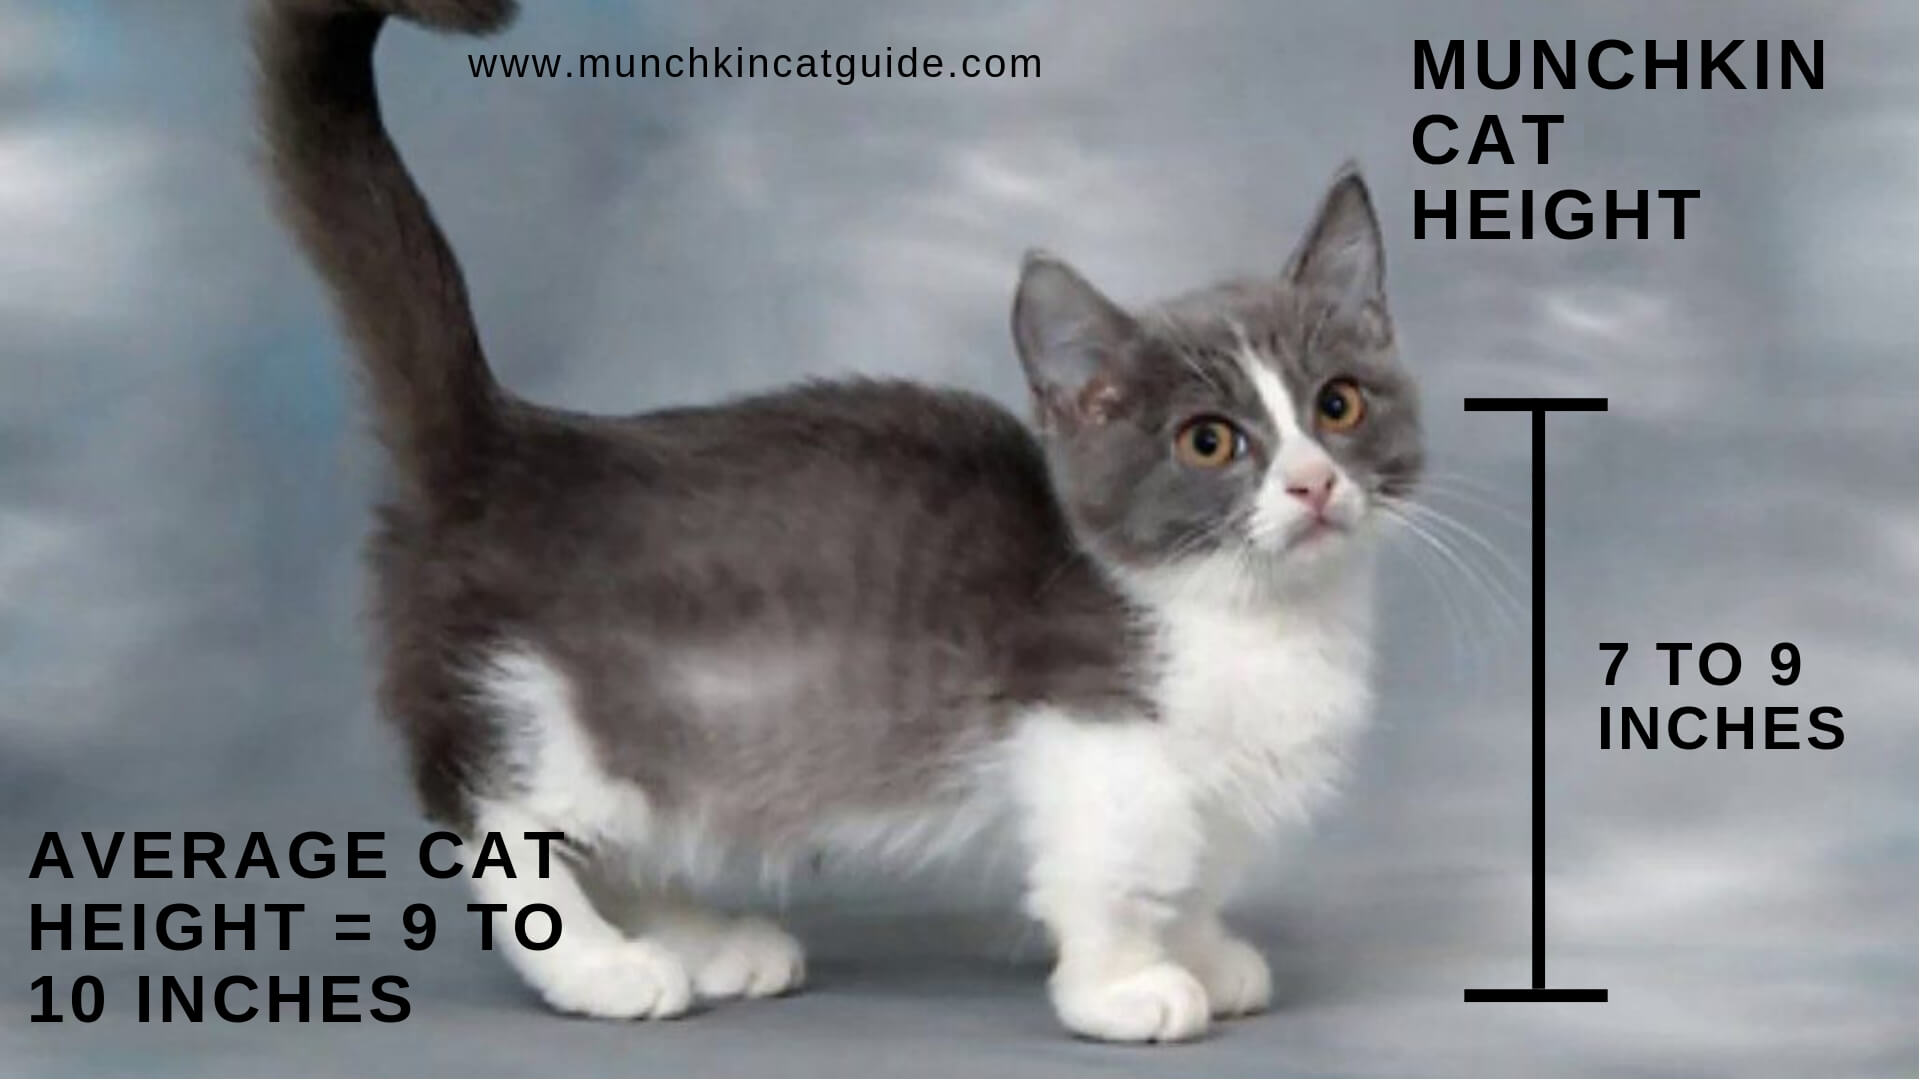 Munchkin Cat height graphic